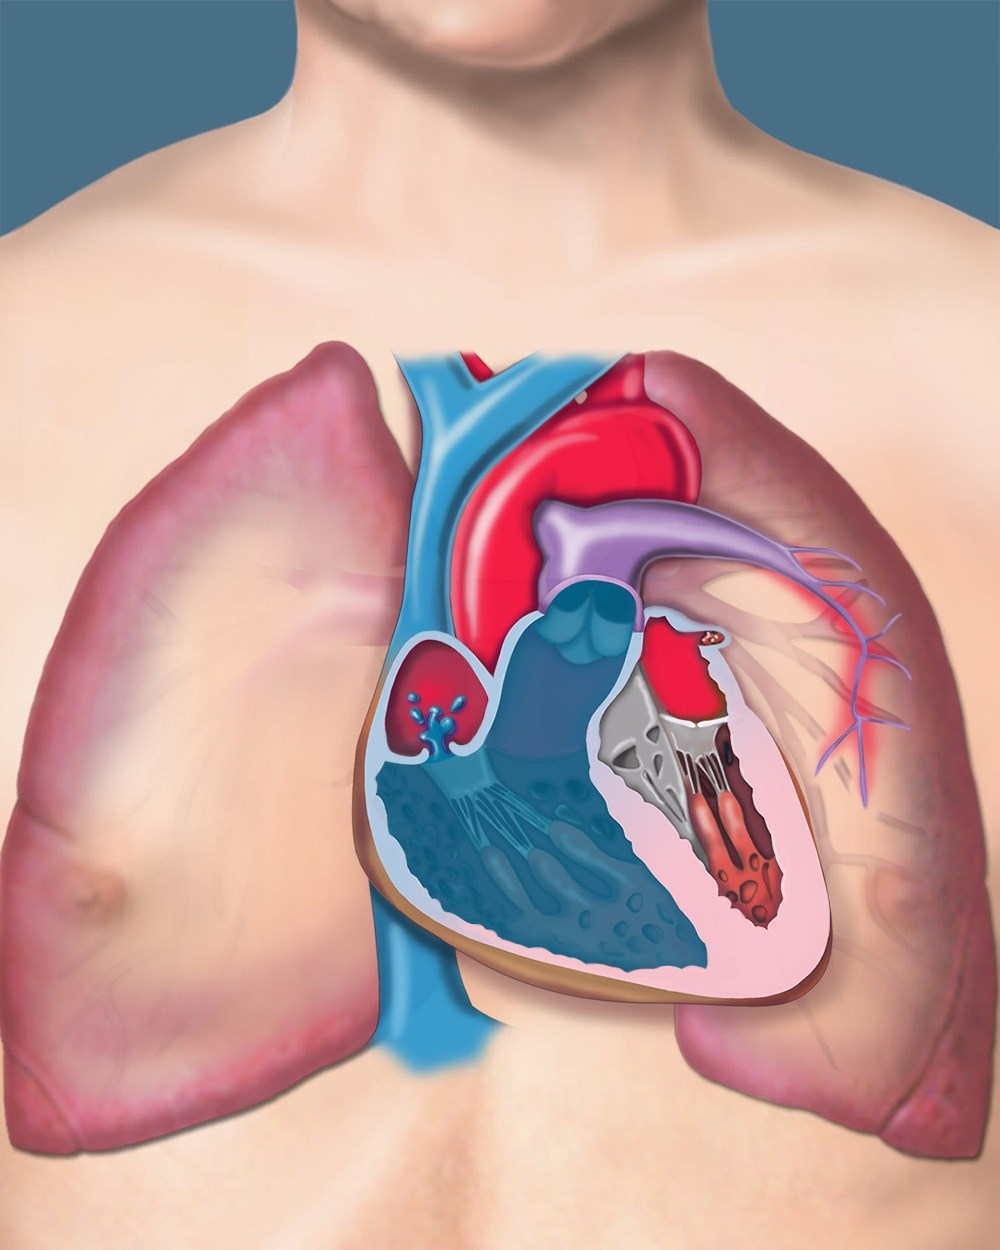 Thoracic and Pulmonary Conditions Associated With Connective Tissue Disease